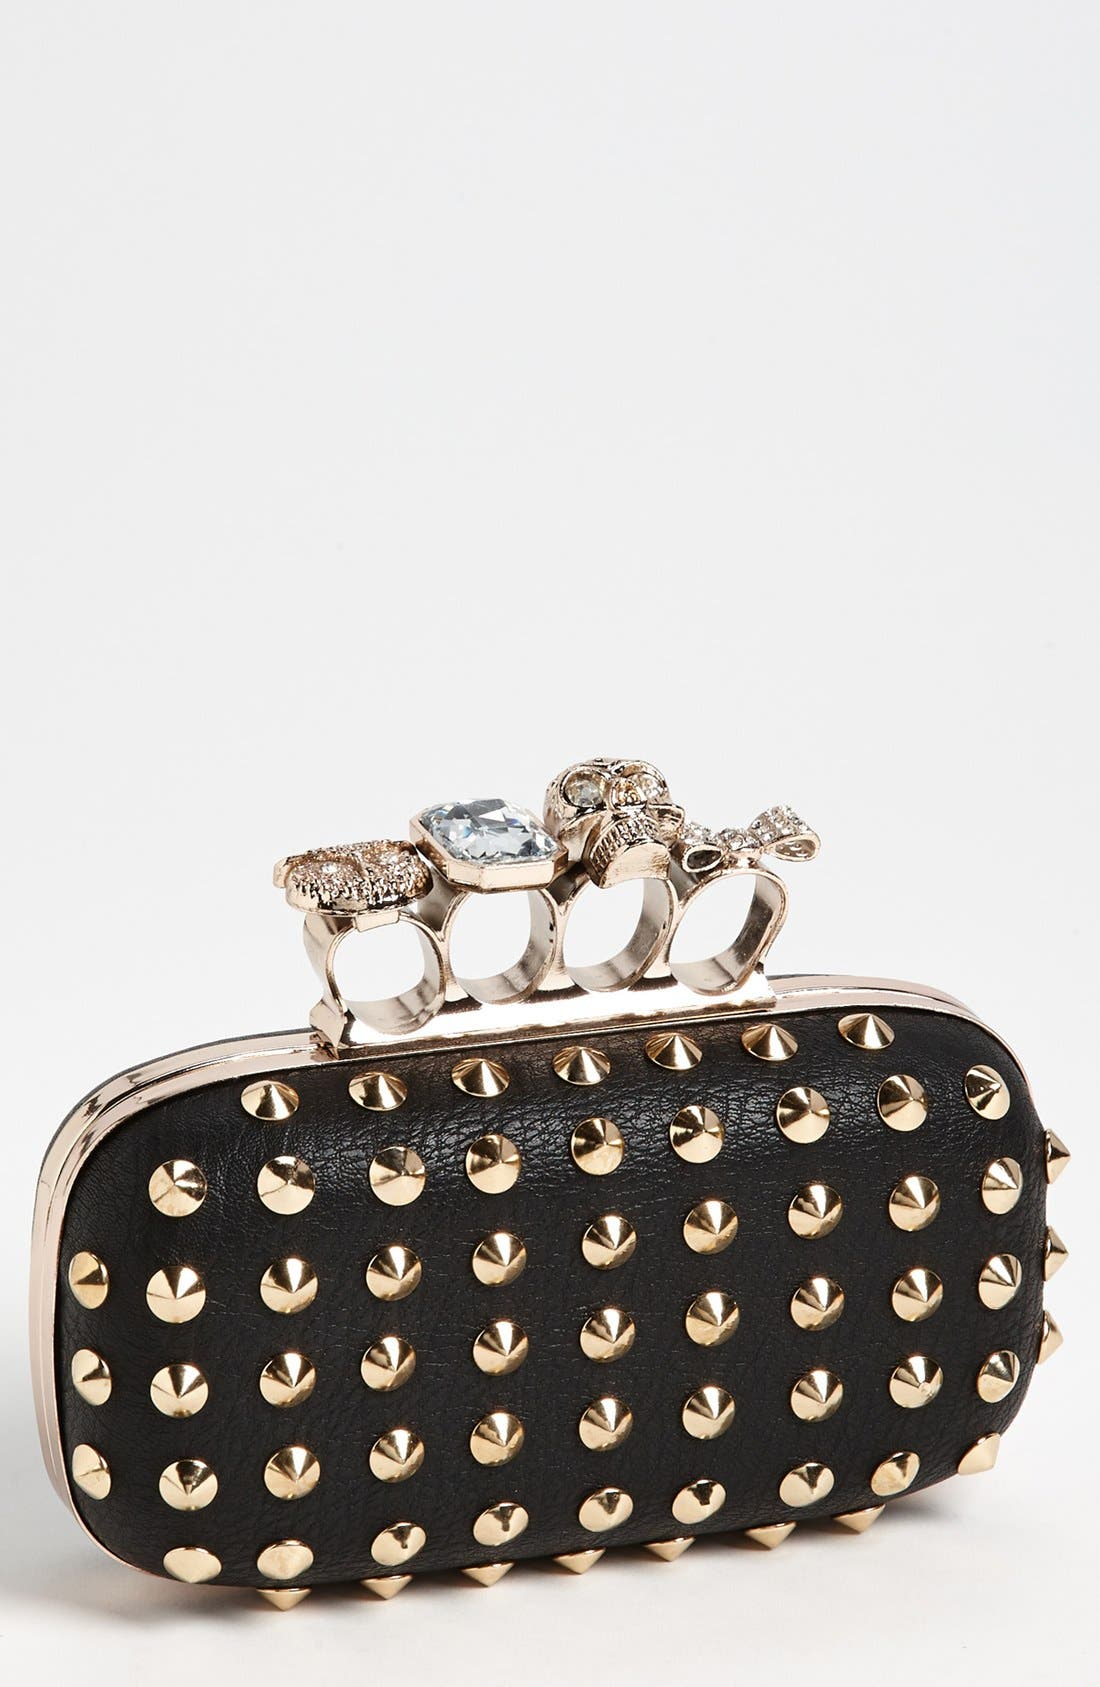 Main Image - Natasha Couture 'Finger' Studded Clutch